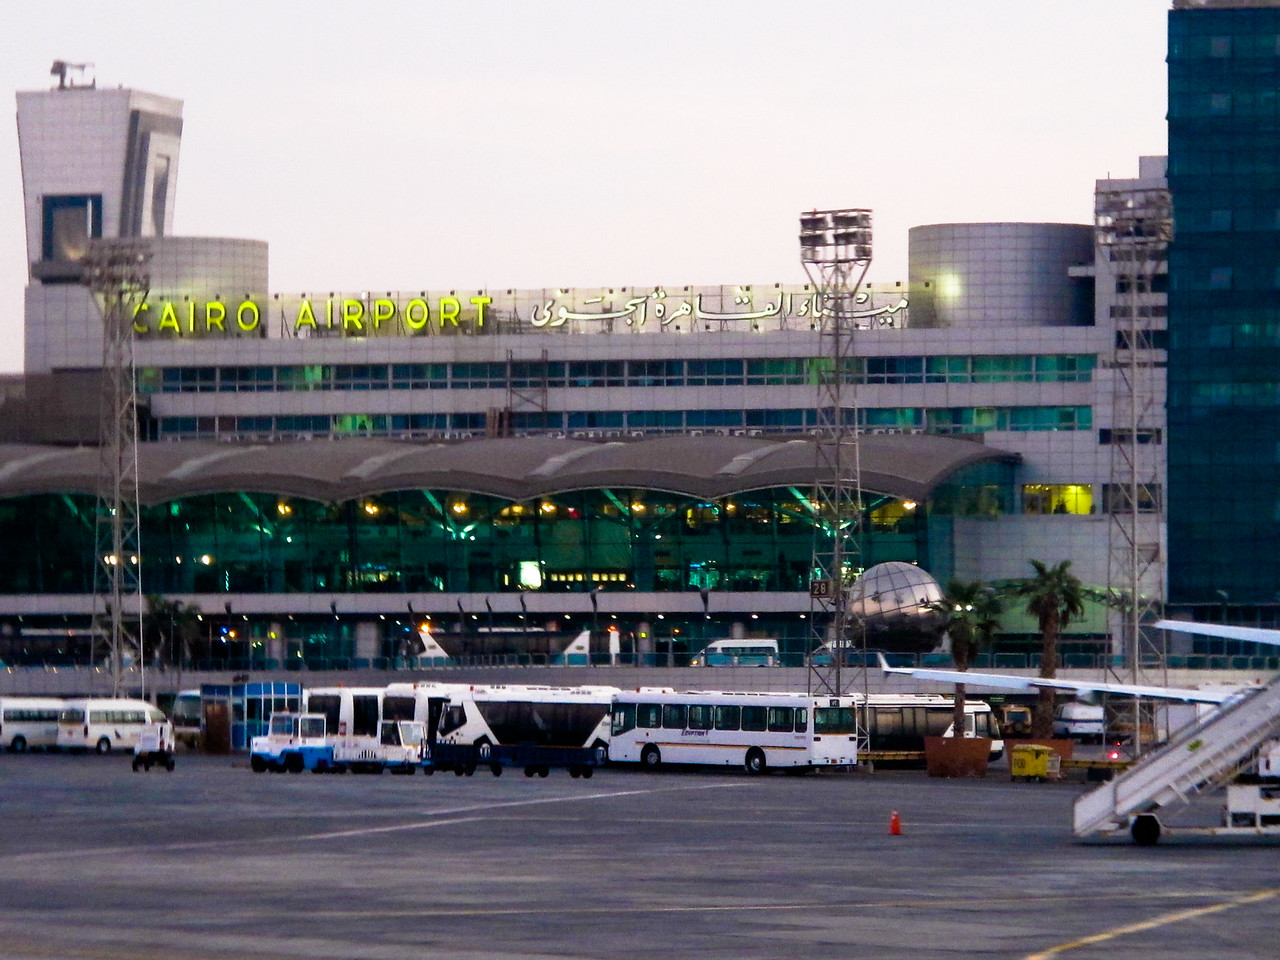 Cairo Airport upon our arrival at dusk.